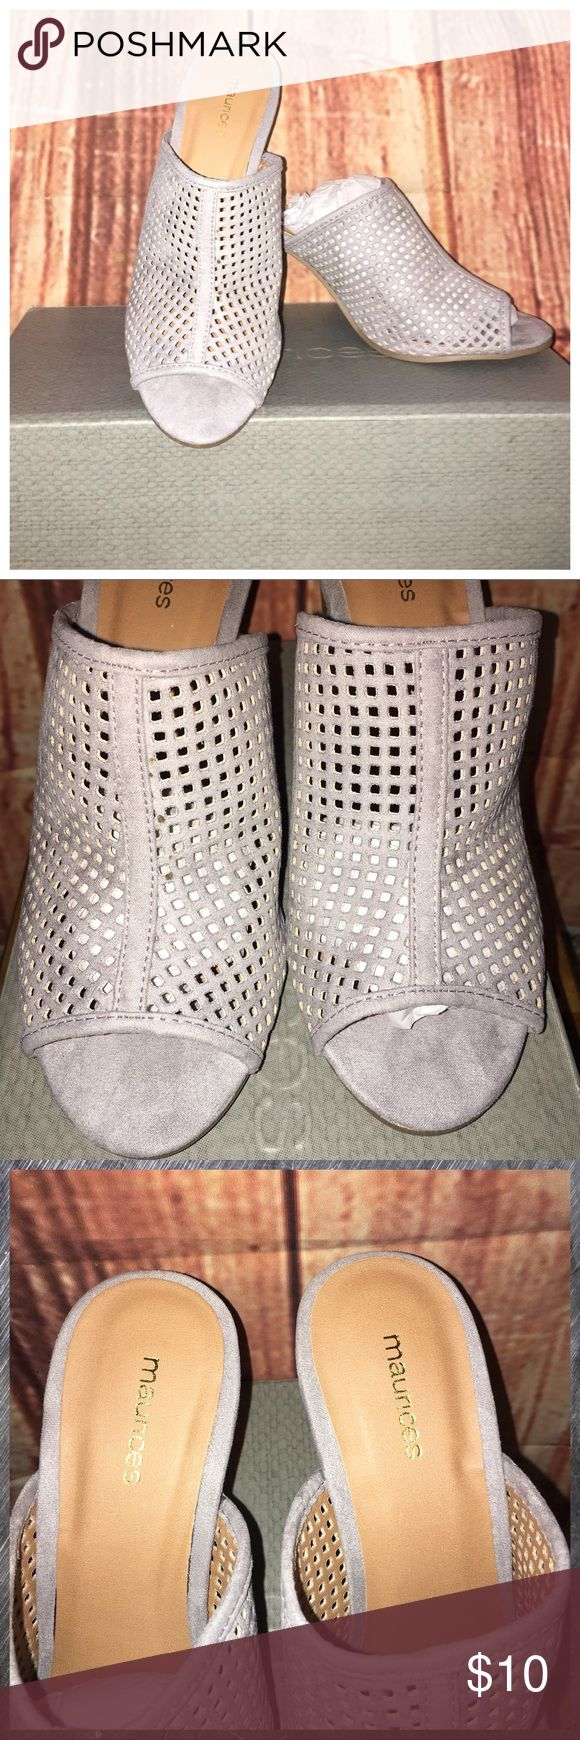 "🐨Gray laser cut out slides🐨 Brand new in the box gray slides size 9 from Maurices. Suede with laser cut out perforation detail. Never worn. Heel is 3"". Retail is $32.95 Maurices Shoes"